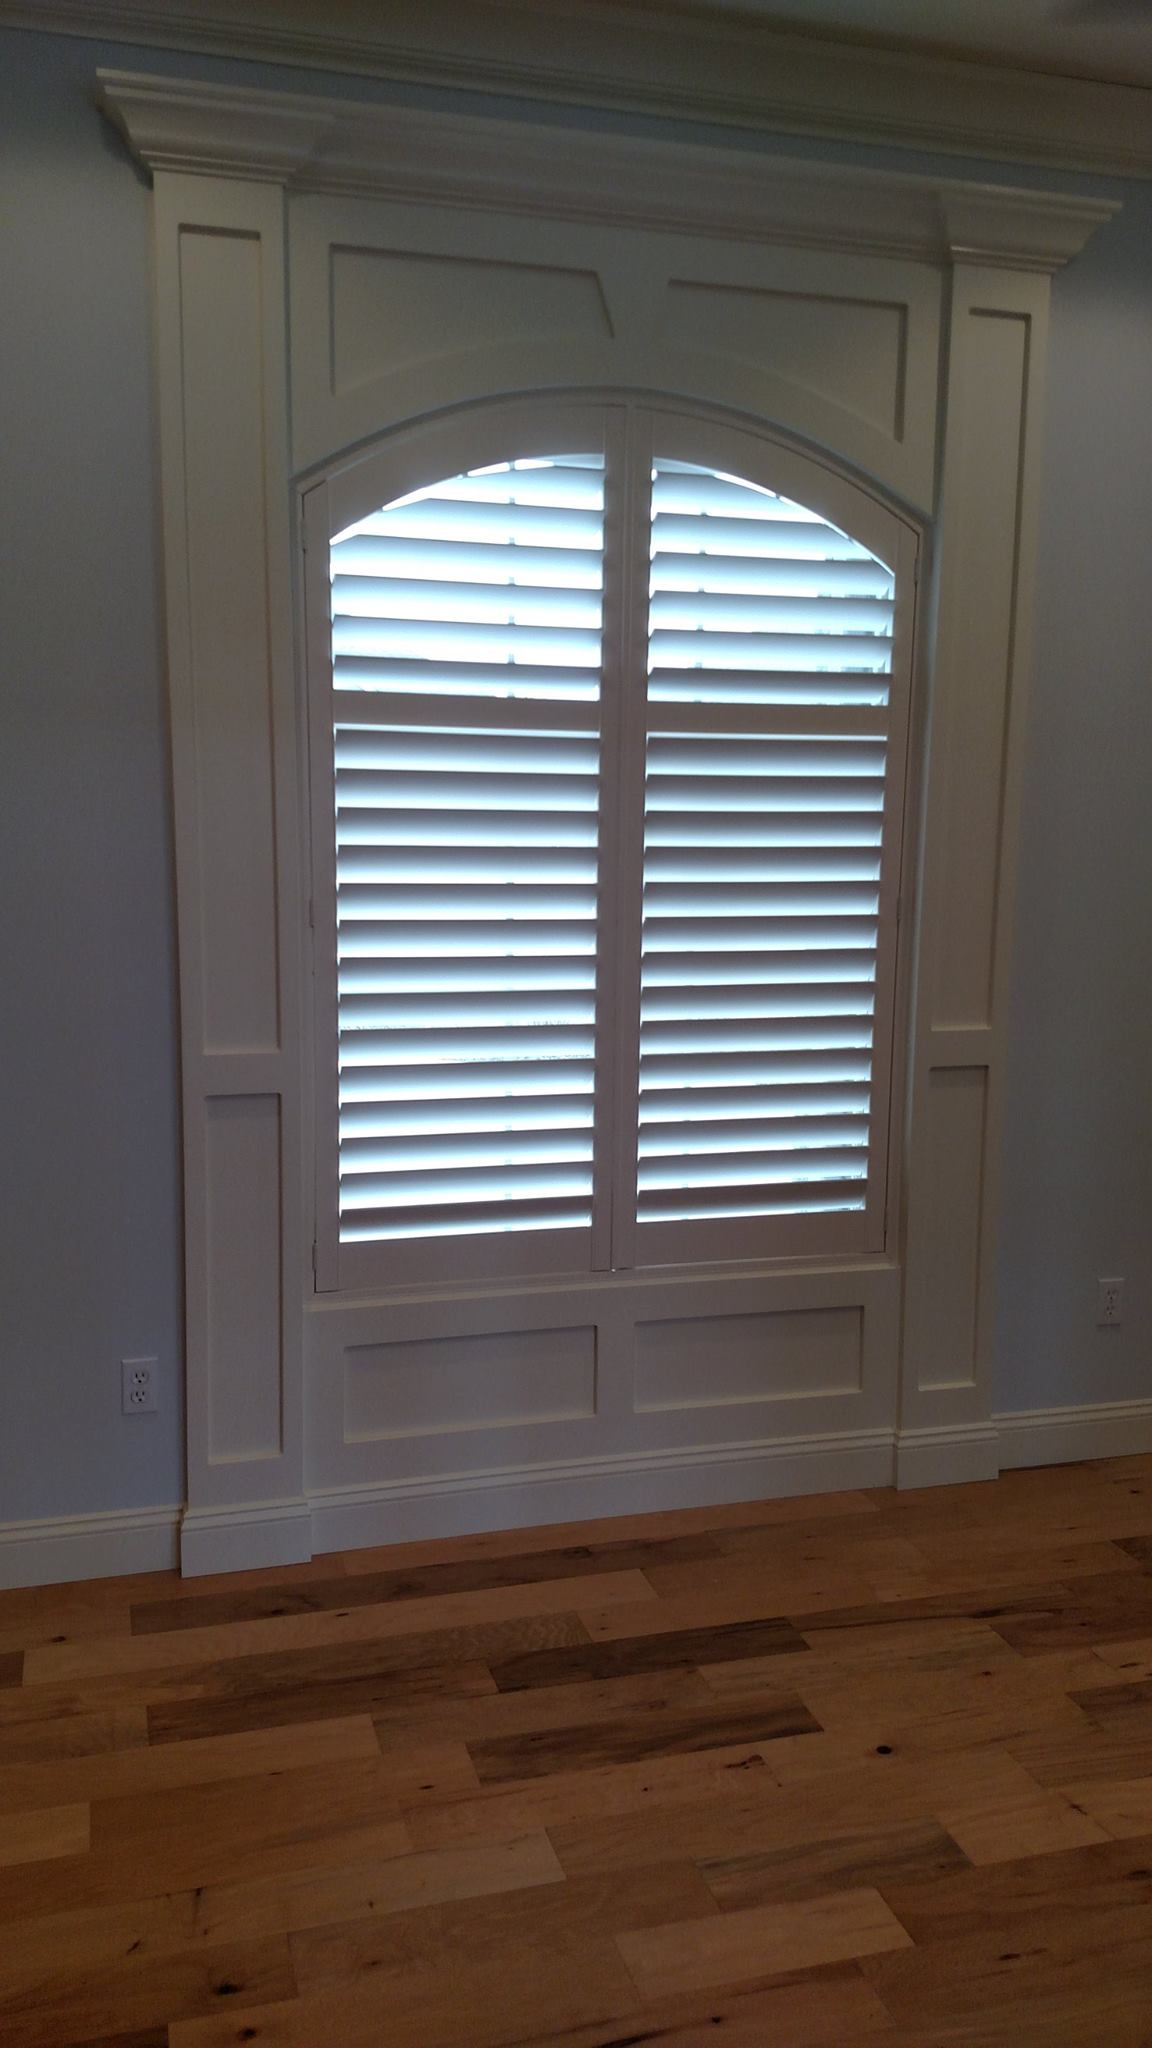 arched and signature shutters window curved blinds for windows sunburst images